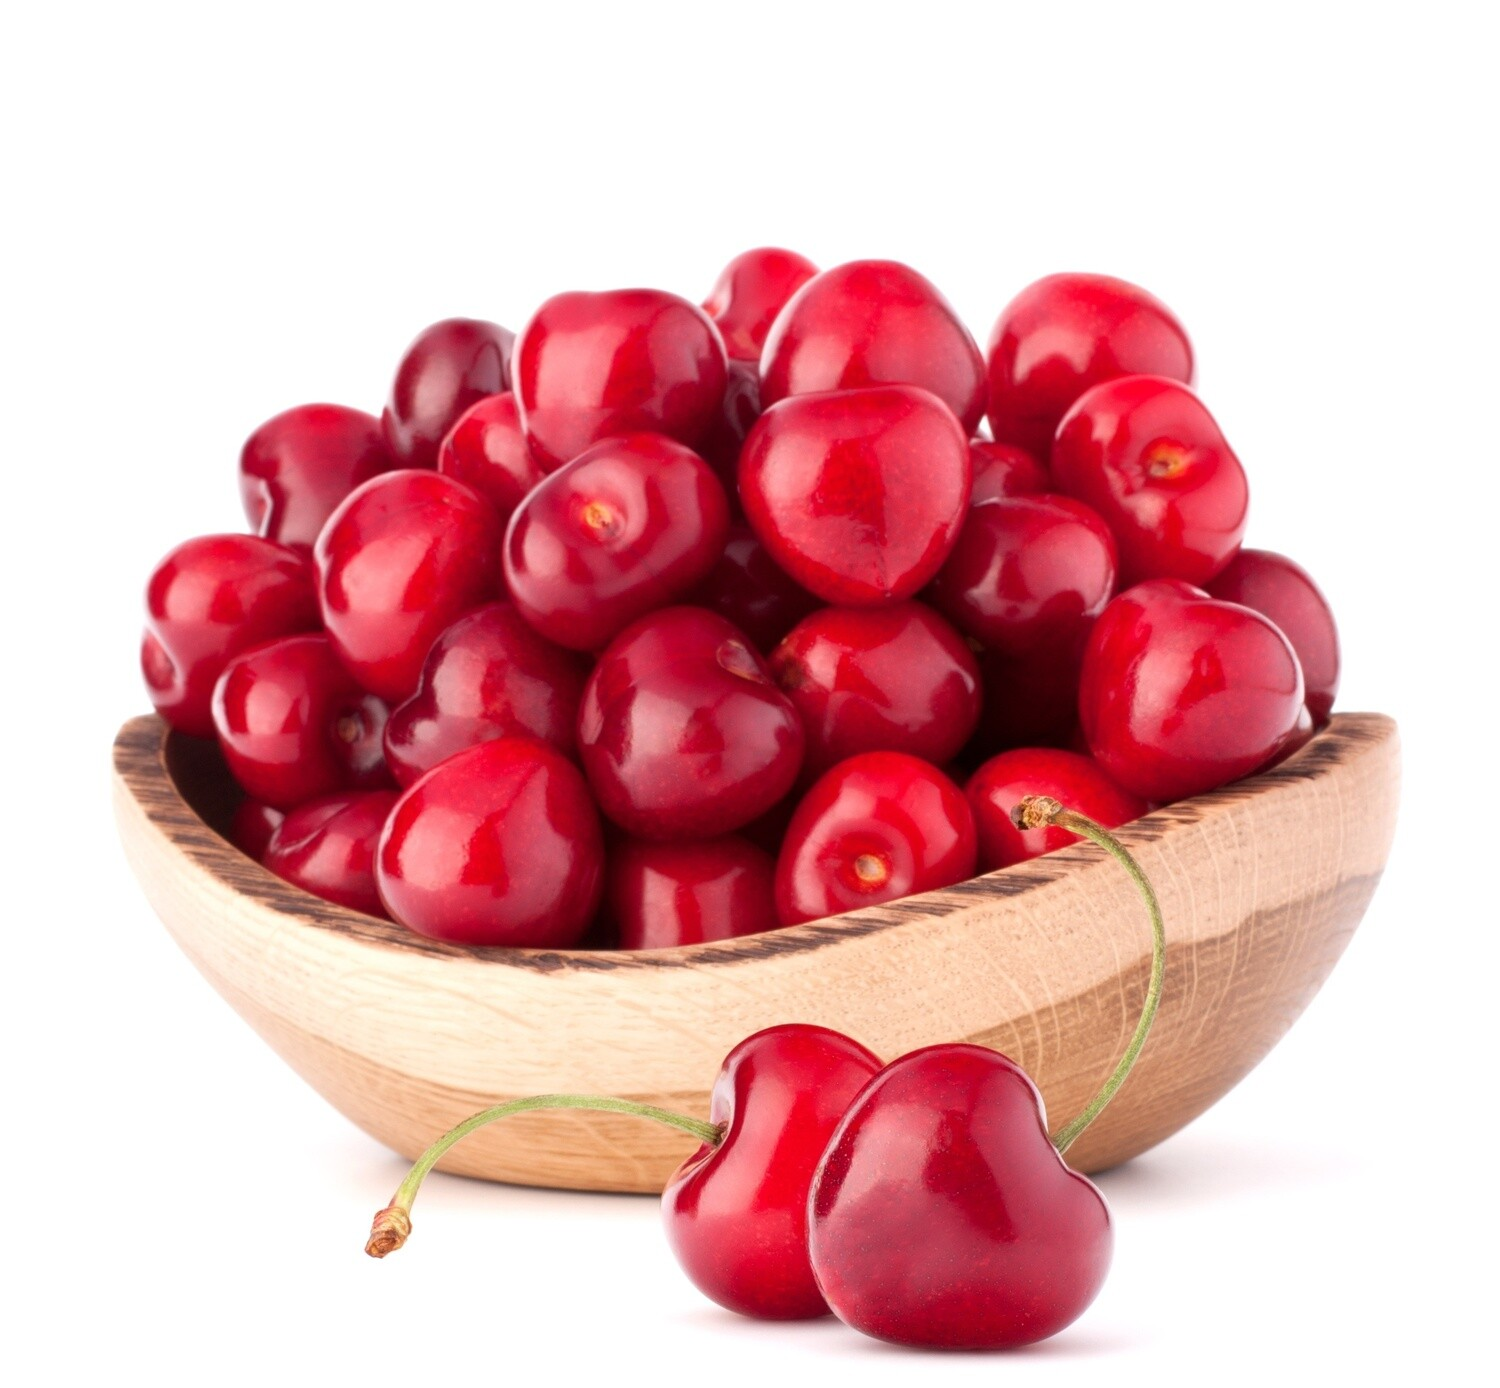 FROZEN SWEET CHERRY (Pitted) 1 KG